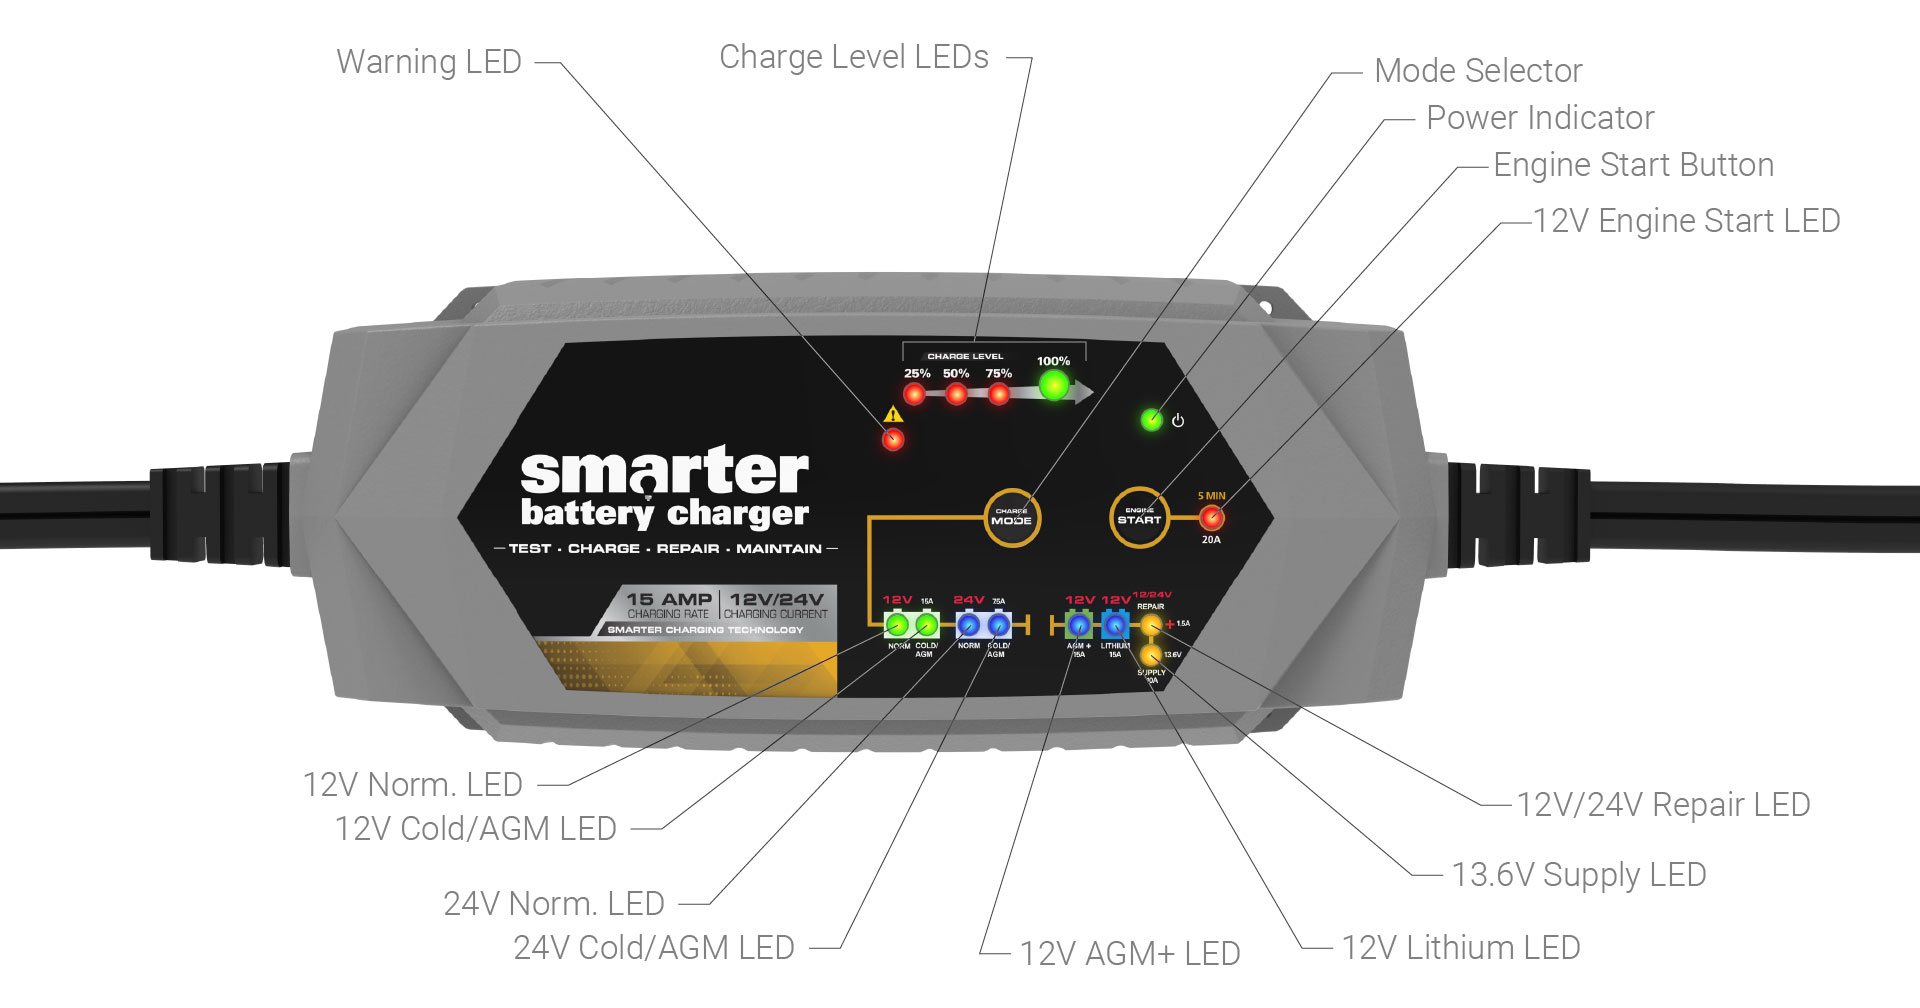 Ic 15000 15 Amp 12 24v Intelligent Microprocessor Battery Charger Circuit Lead Acid Monitor 12v The Also Has A 136v 5a Supply Mode Which Allows You To Power Dc Devices And Engine Start Feature Delivers 20a For 5